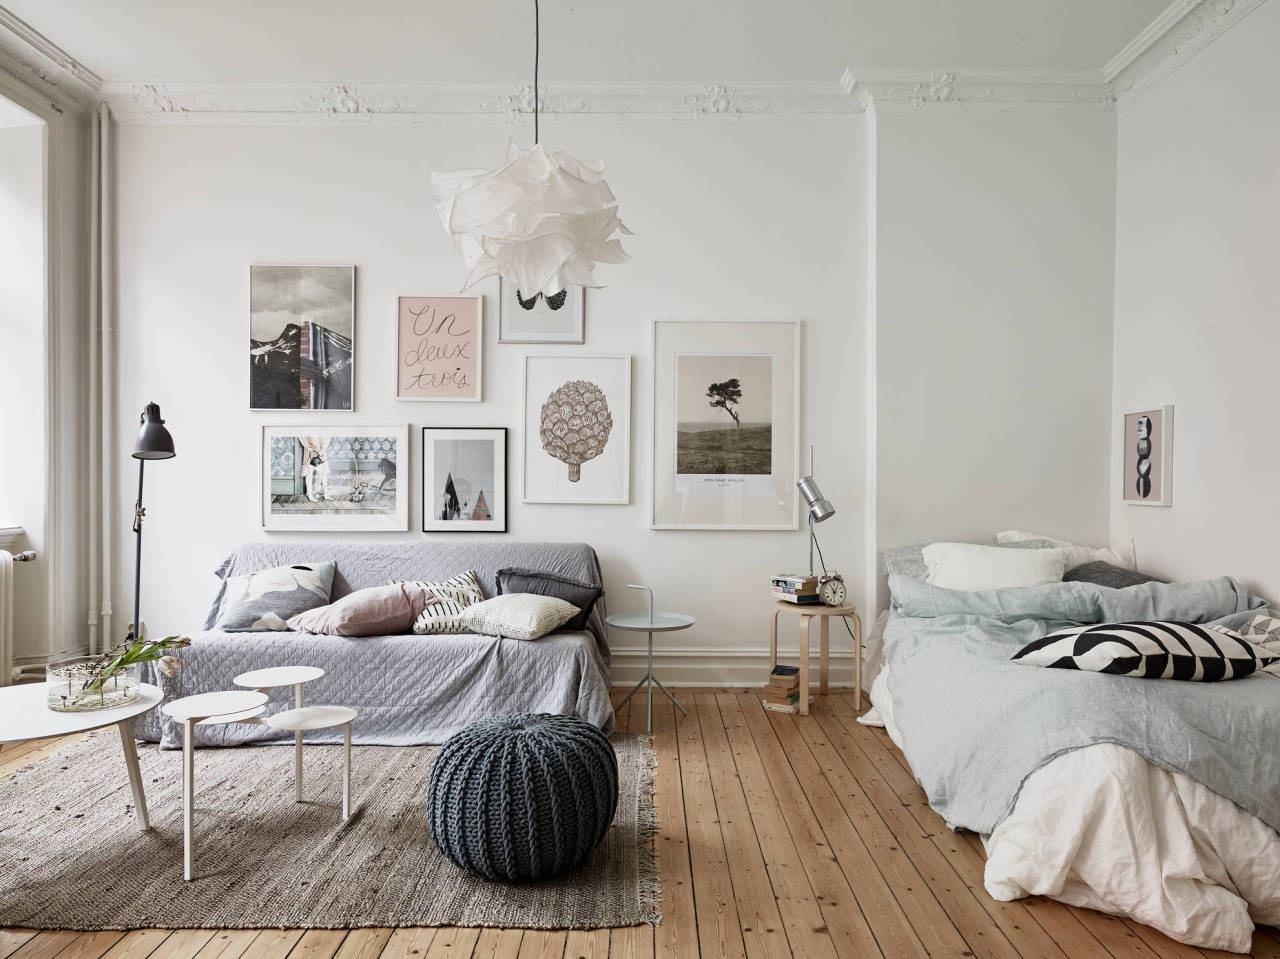 an airy Scandinavian studio apartment with touches of pastels, a lovely gallery wall and cool lamps